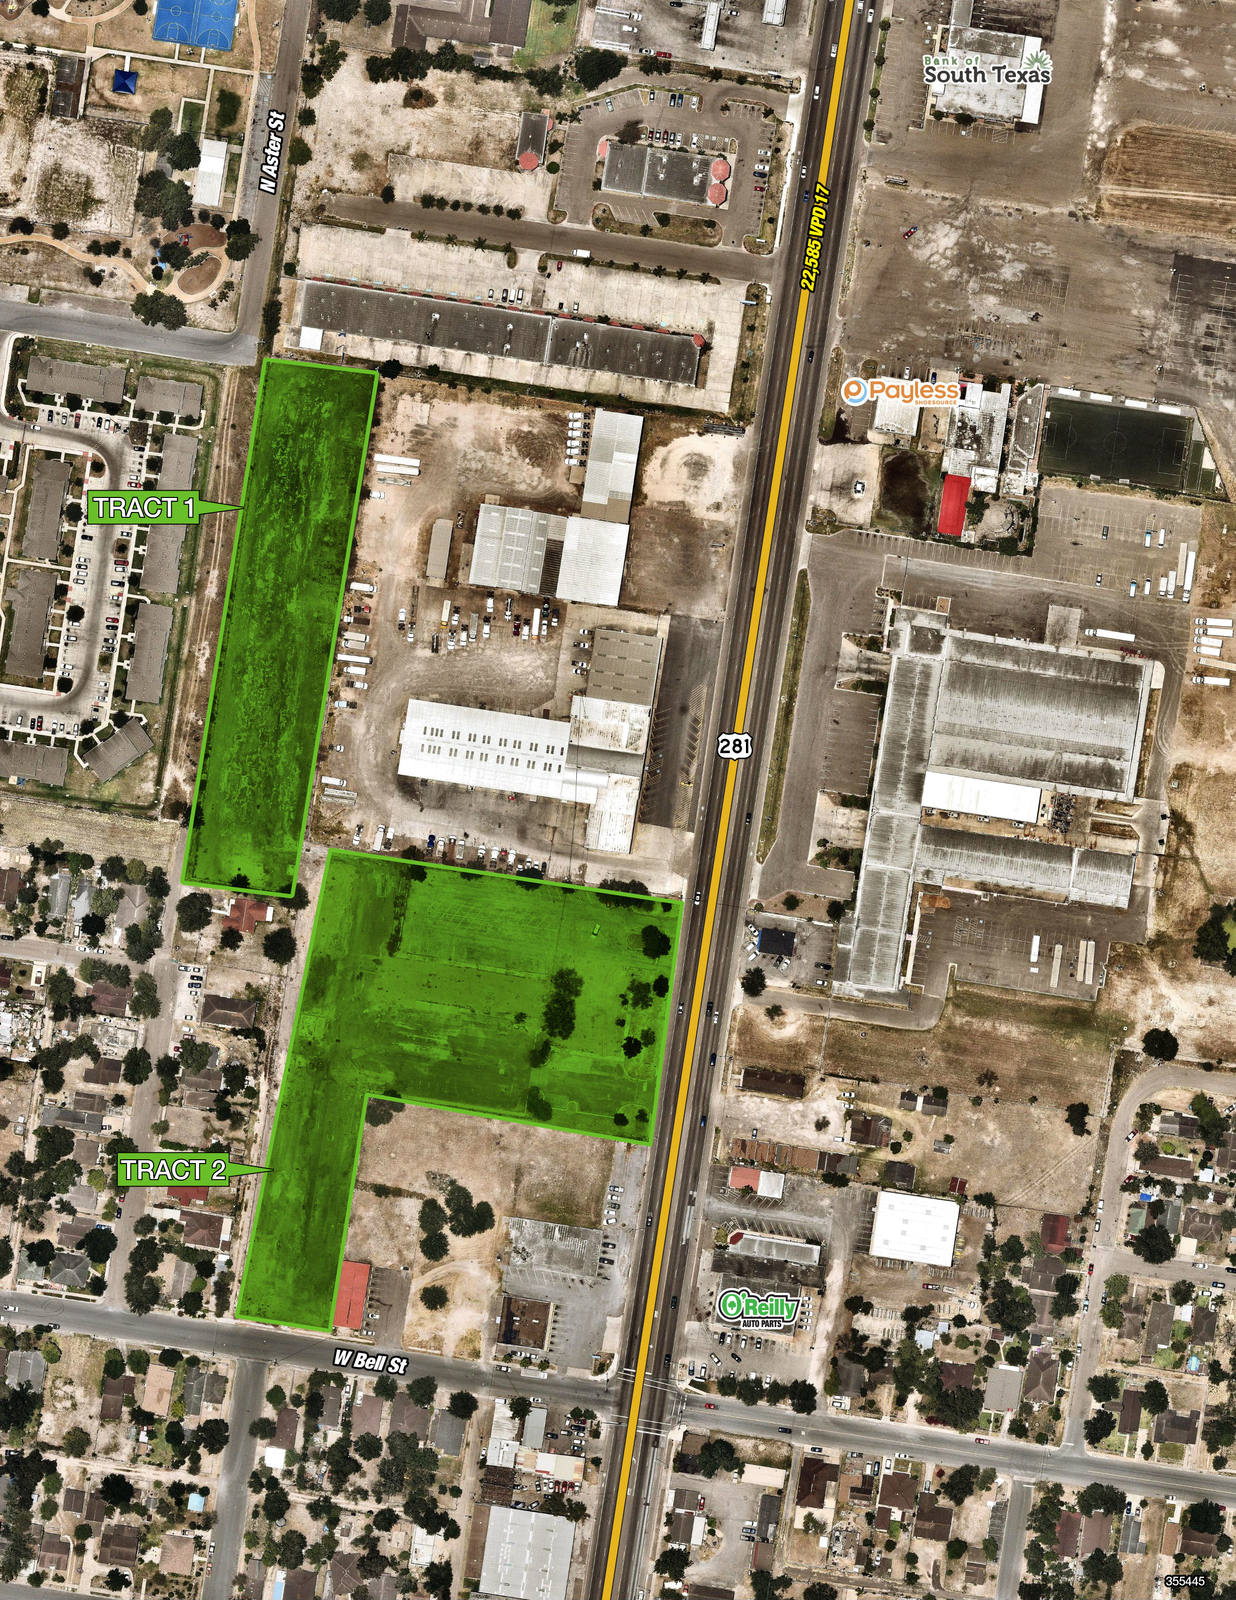 CBRE Retail623 N. Cage Blvd. - Pharr623 N. Cage Blvd.  Photo